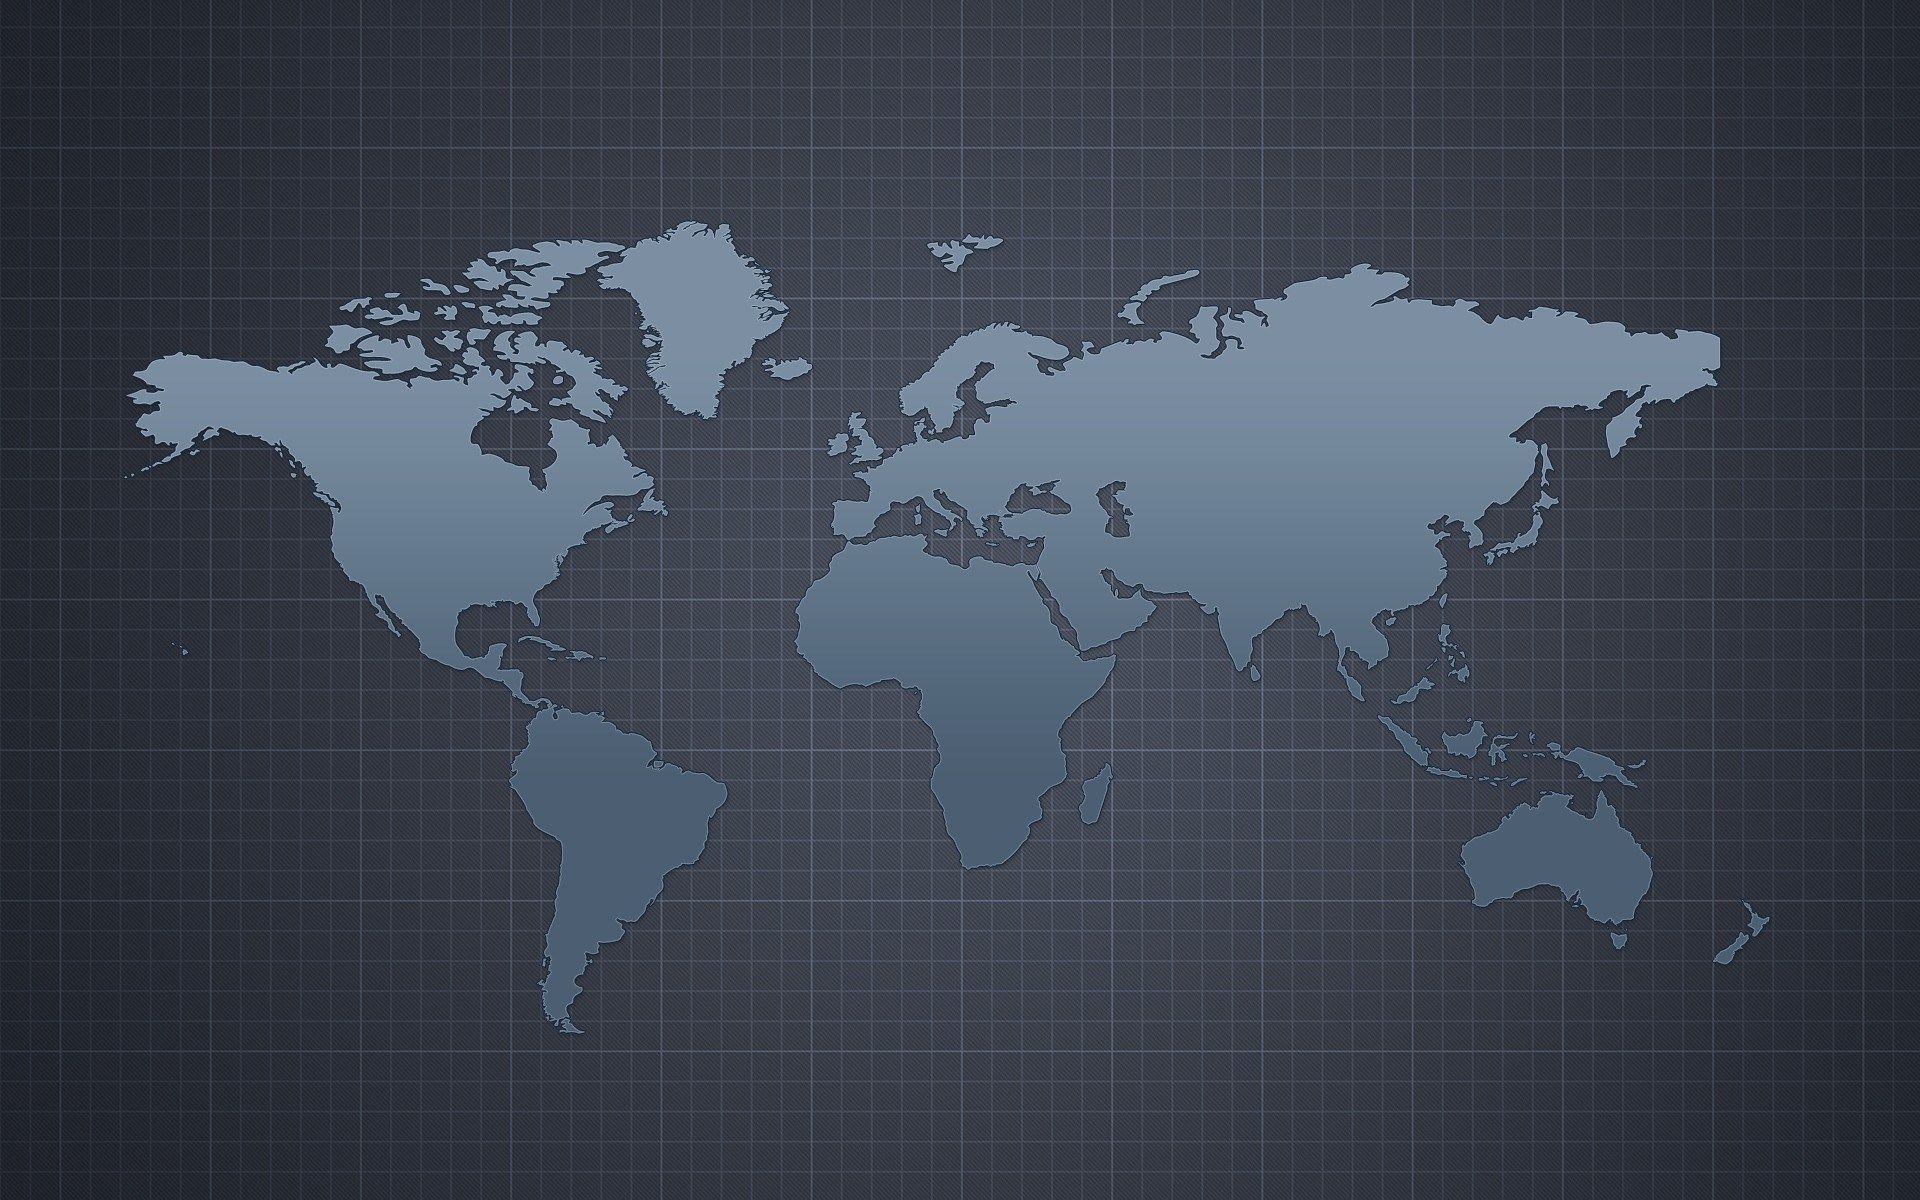 Tanner wilkinson world map image for large desktop 1920x1200 px tanner wilkinson world map image for large desktop 1920x1200 px gumiabroncs Choice Image